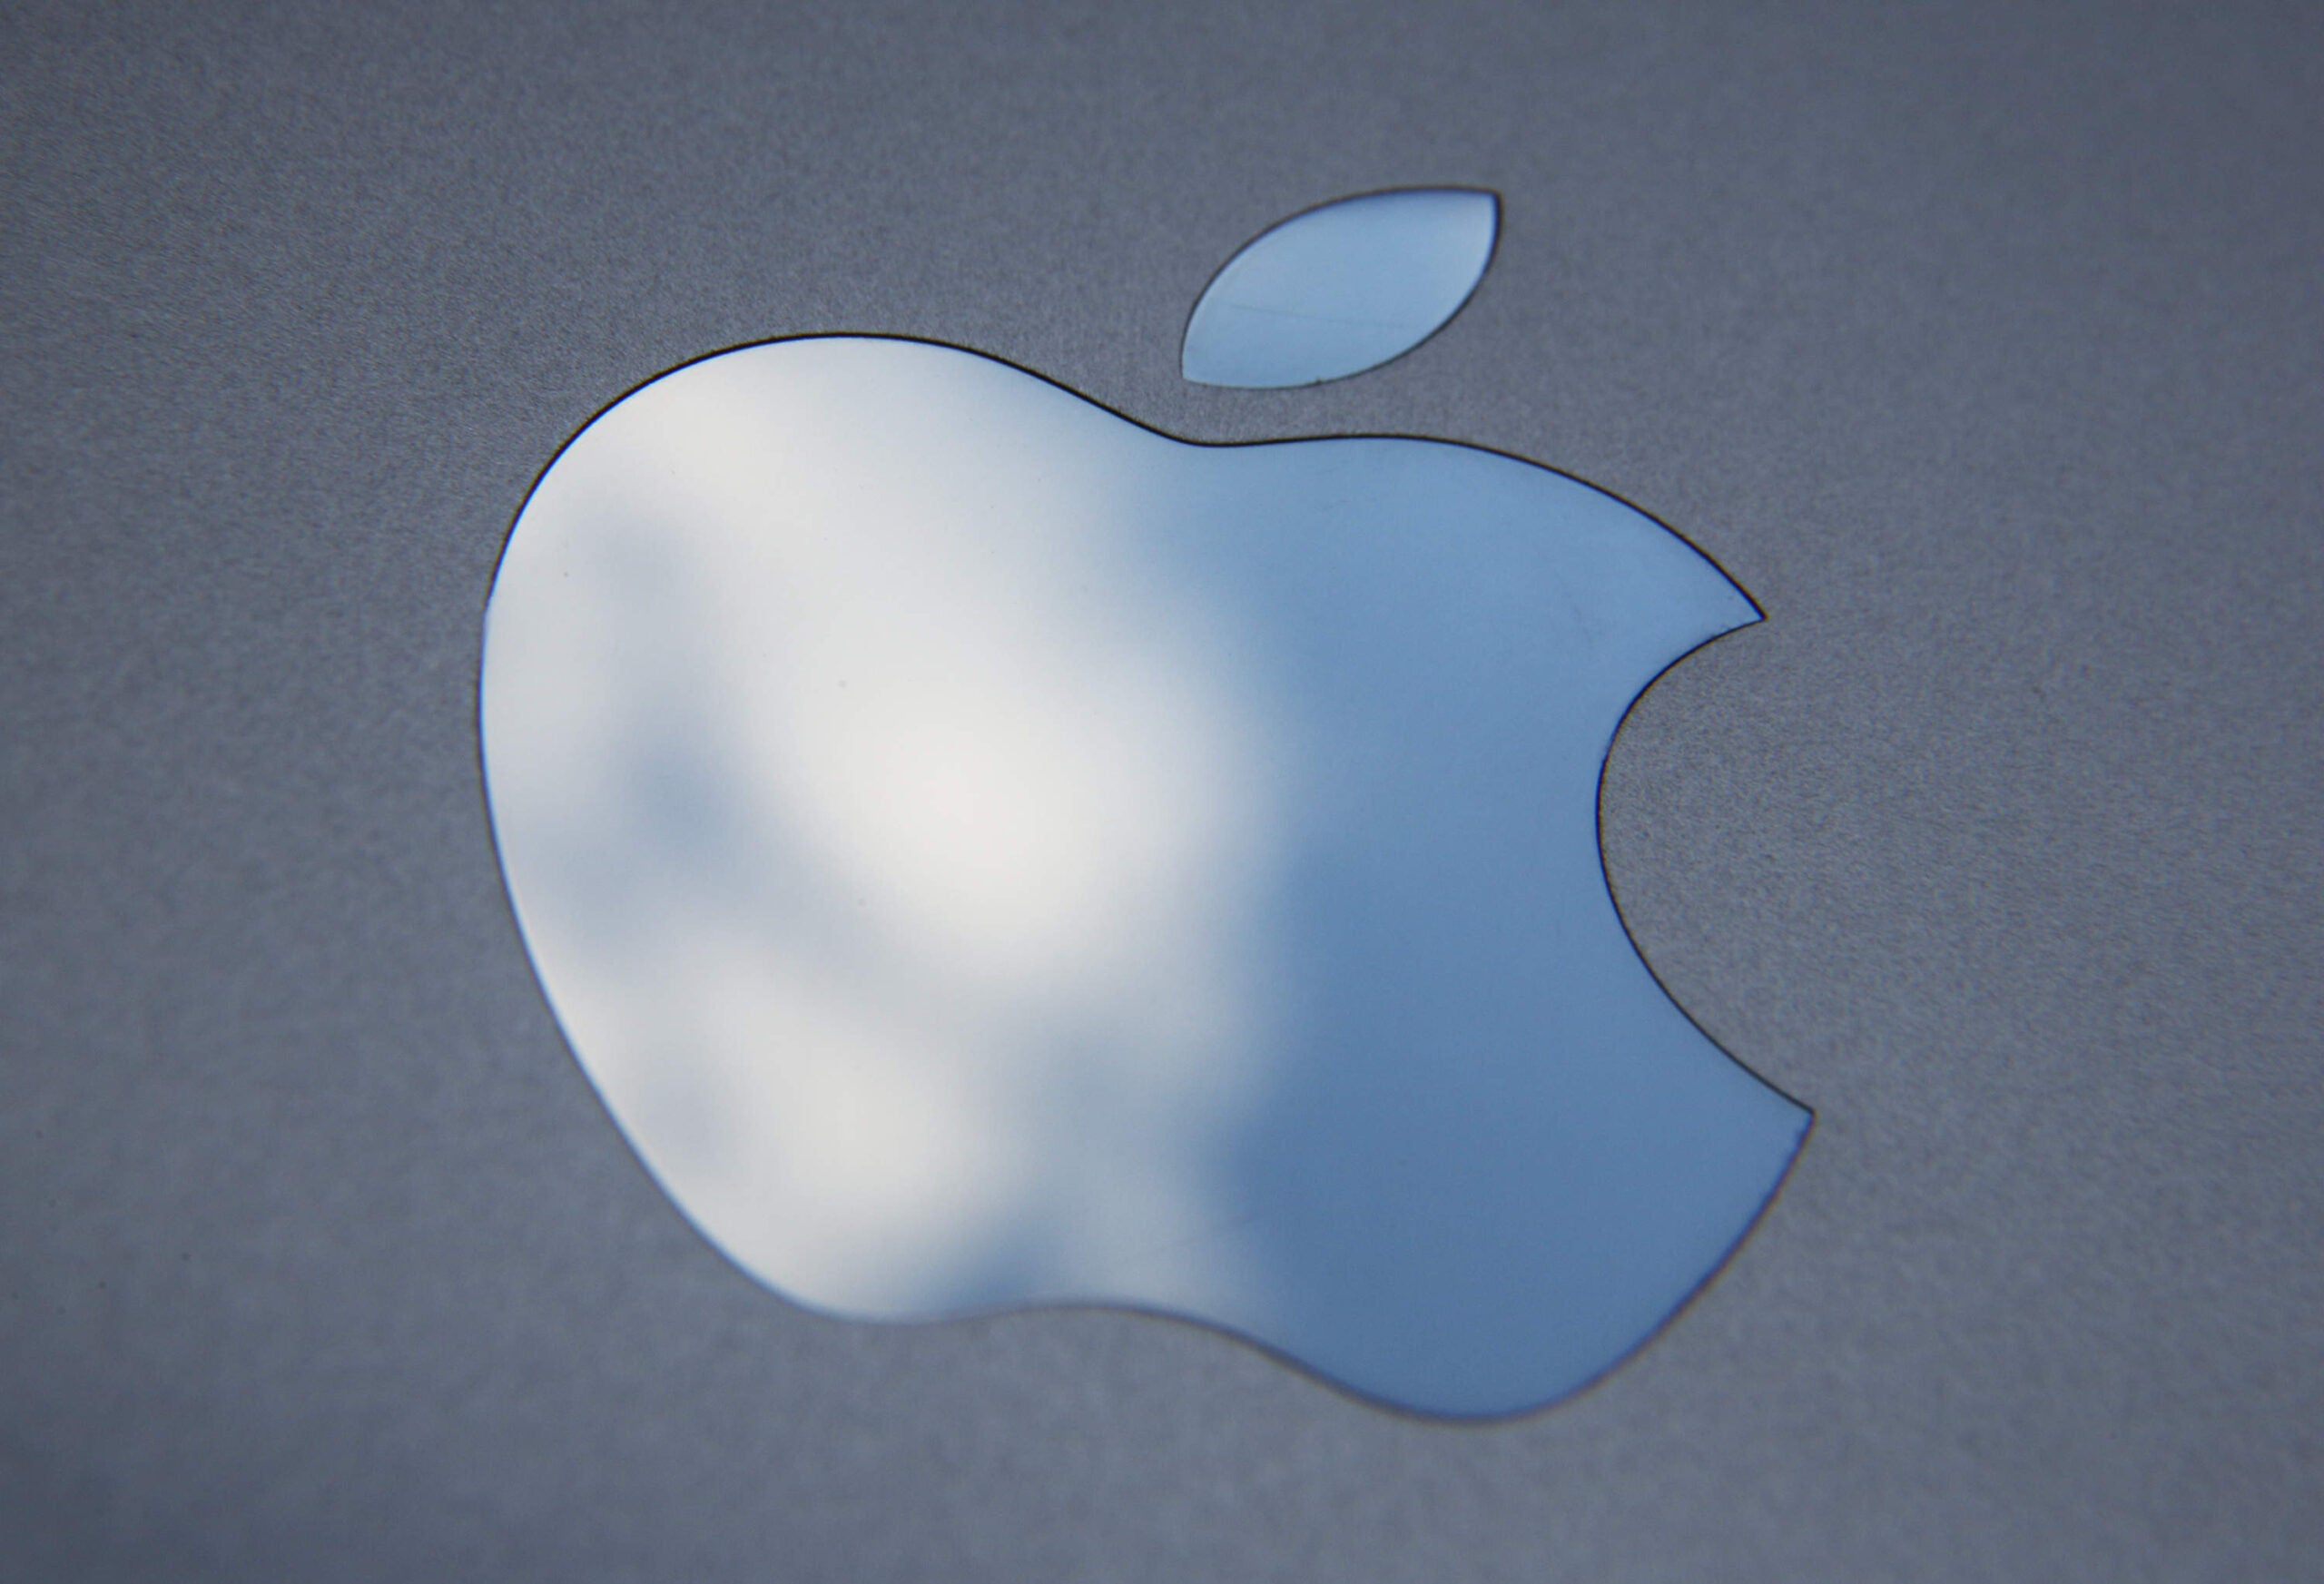 Should you freak out about the Apple flaws affecting all Macs and iPhones?